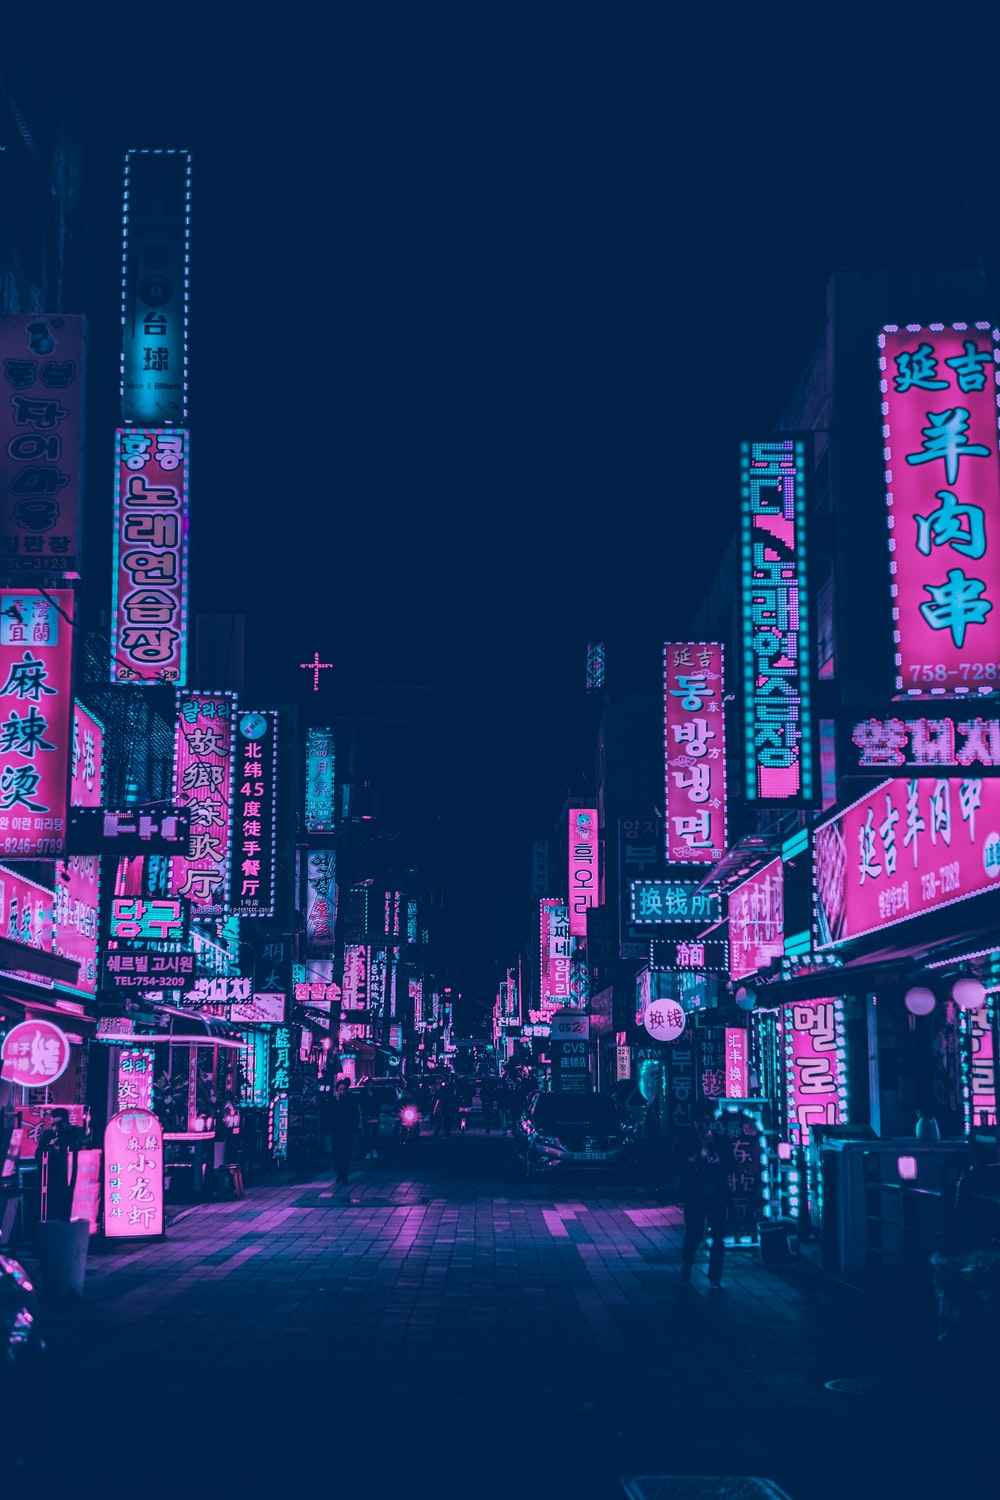 pink and white neon signs of buildings at night